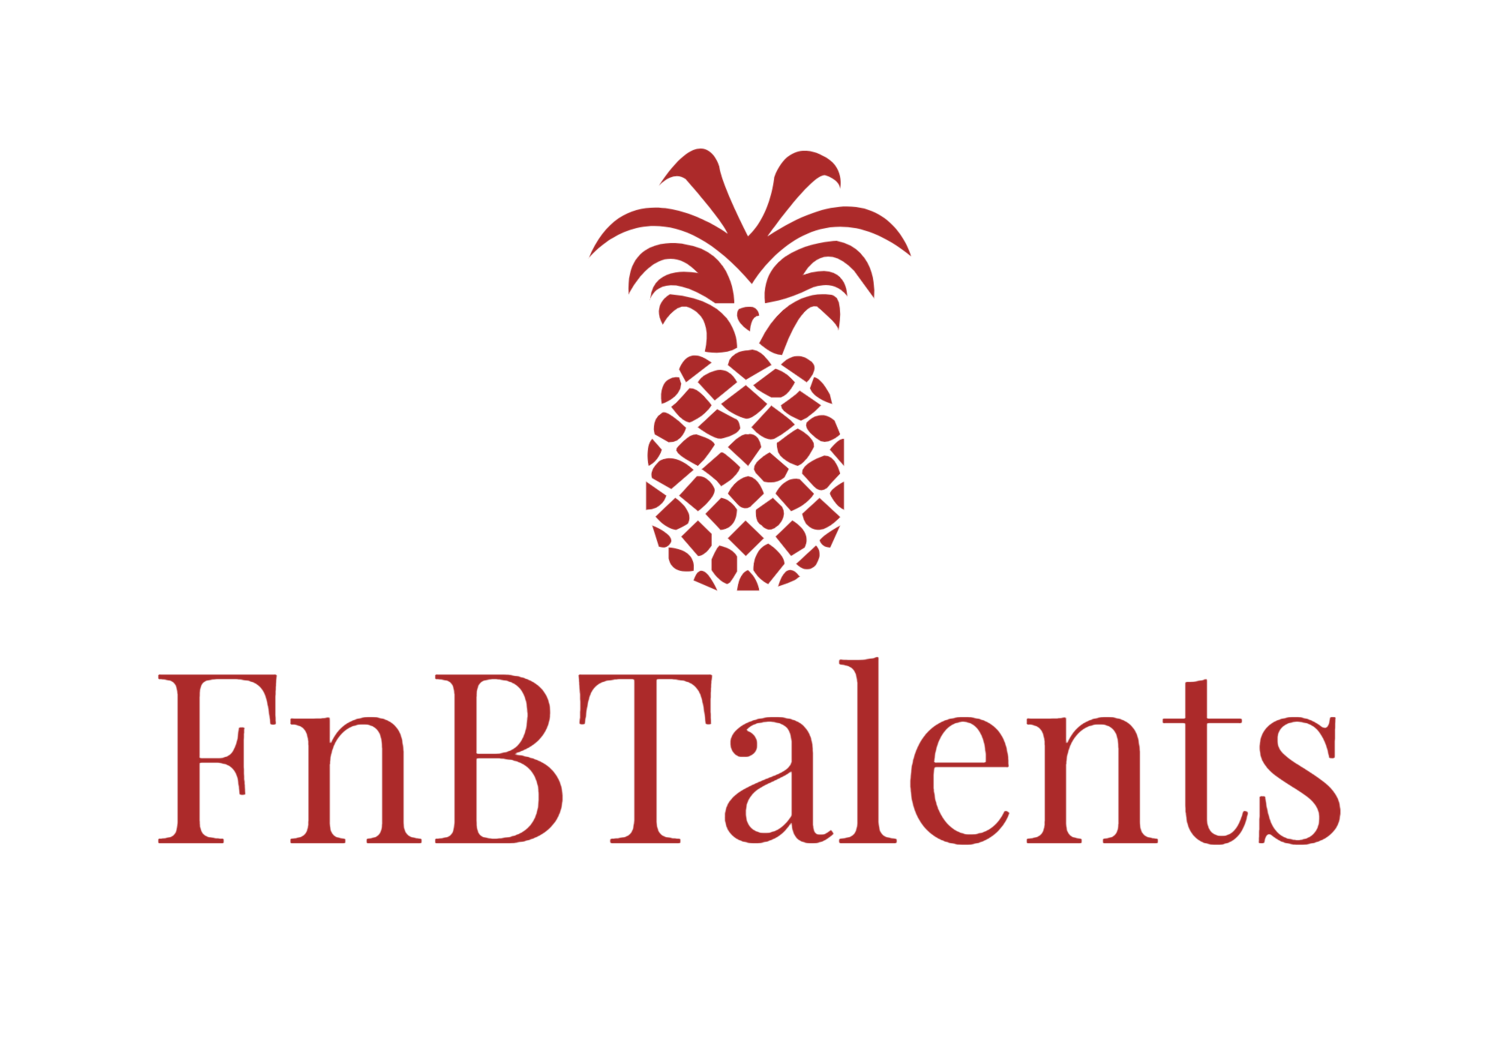 FnBTalents